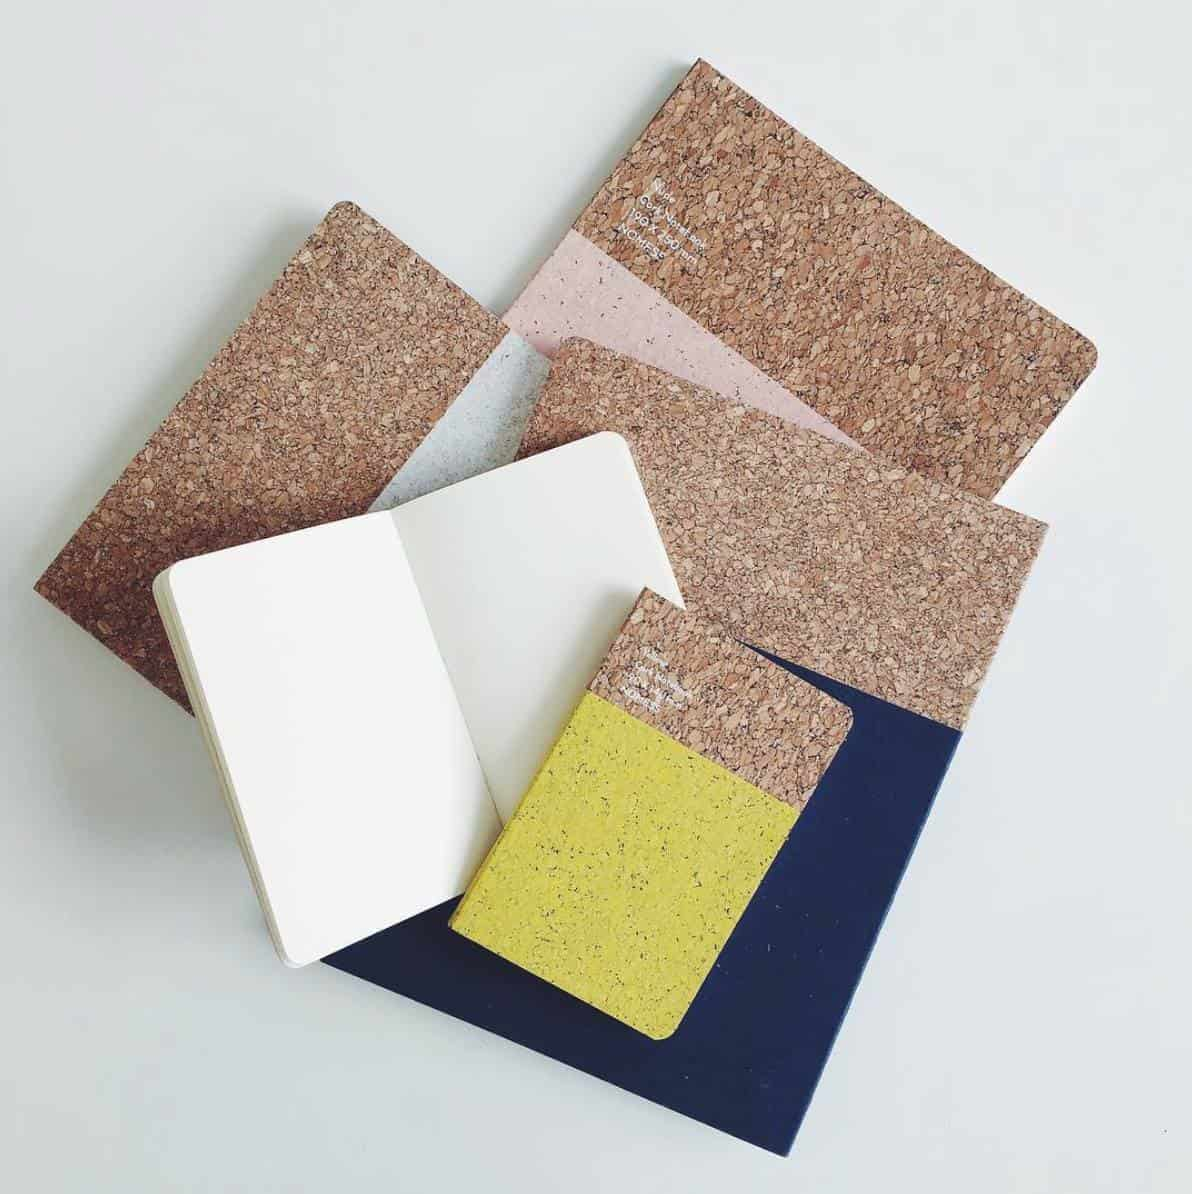 Nomess Copenhagen Stationery news and paper gift